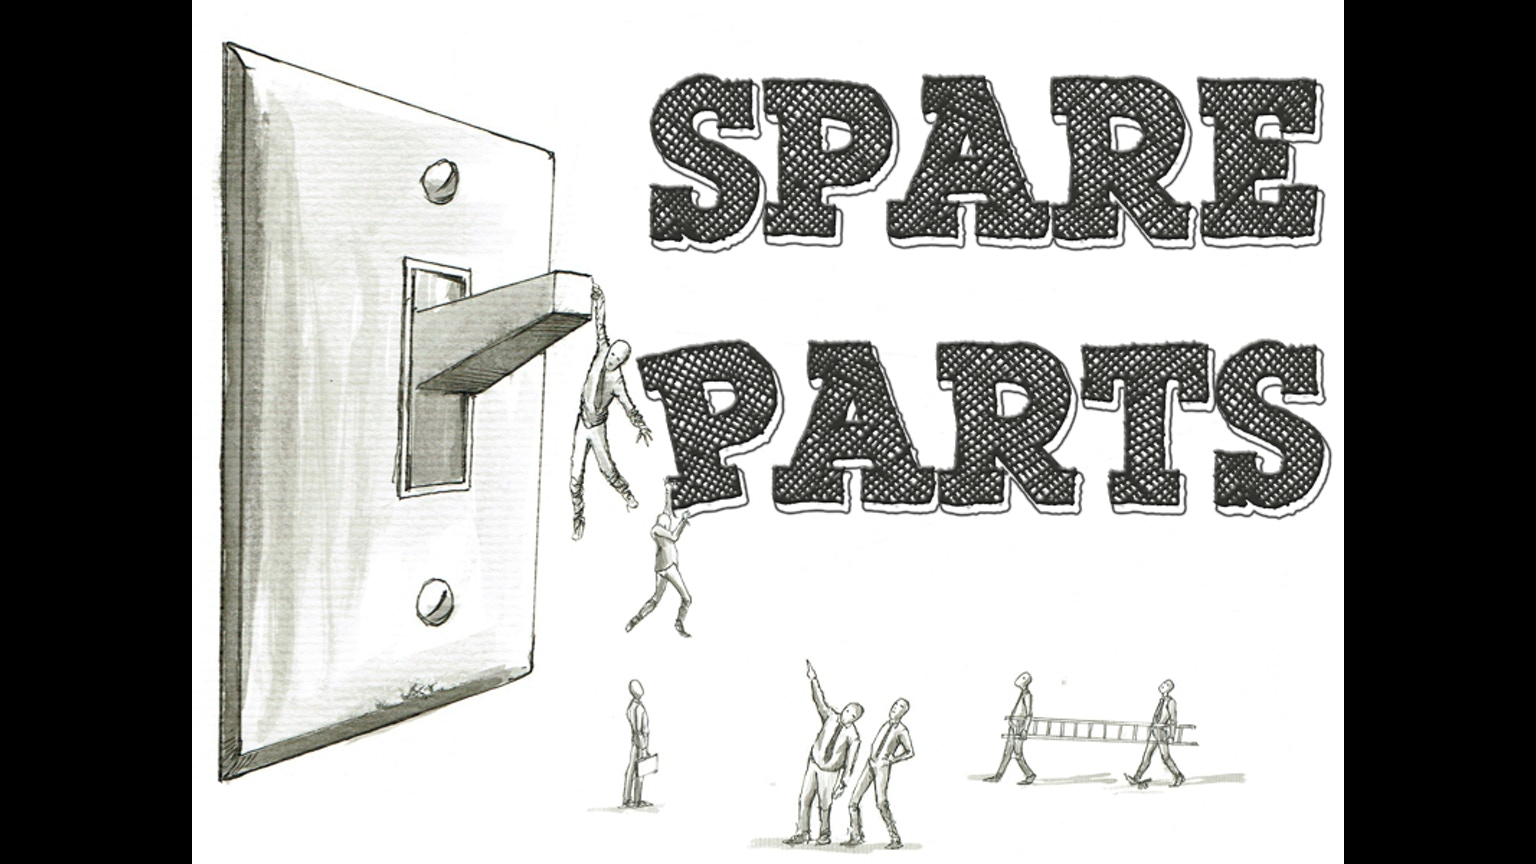 Spare Parts Mail: Spare Parts' New Self-Titled Album By Spare Parts —Kickstarter